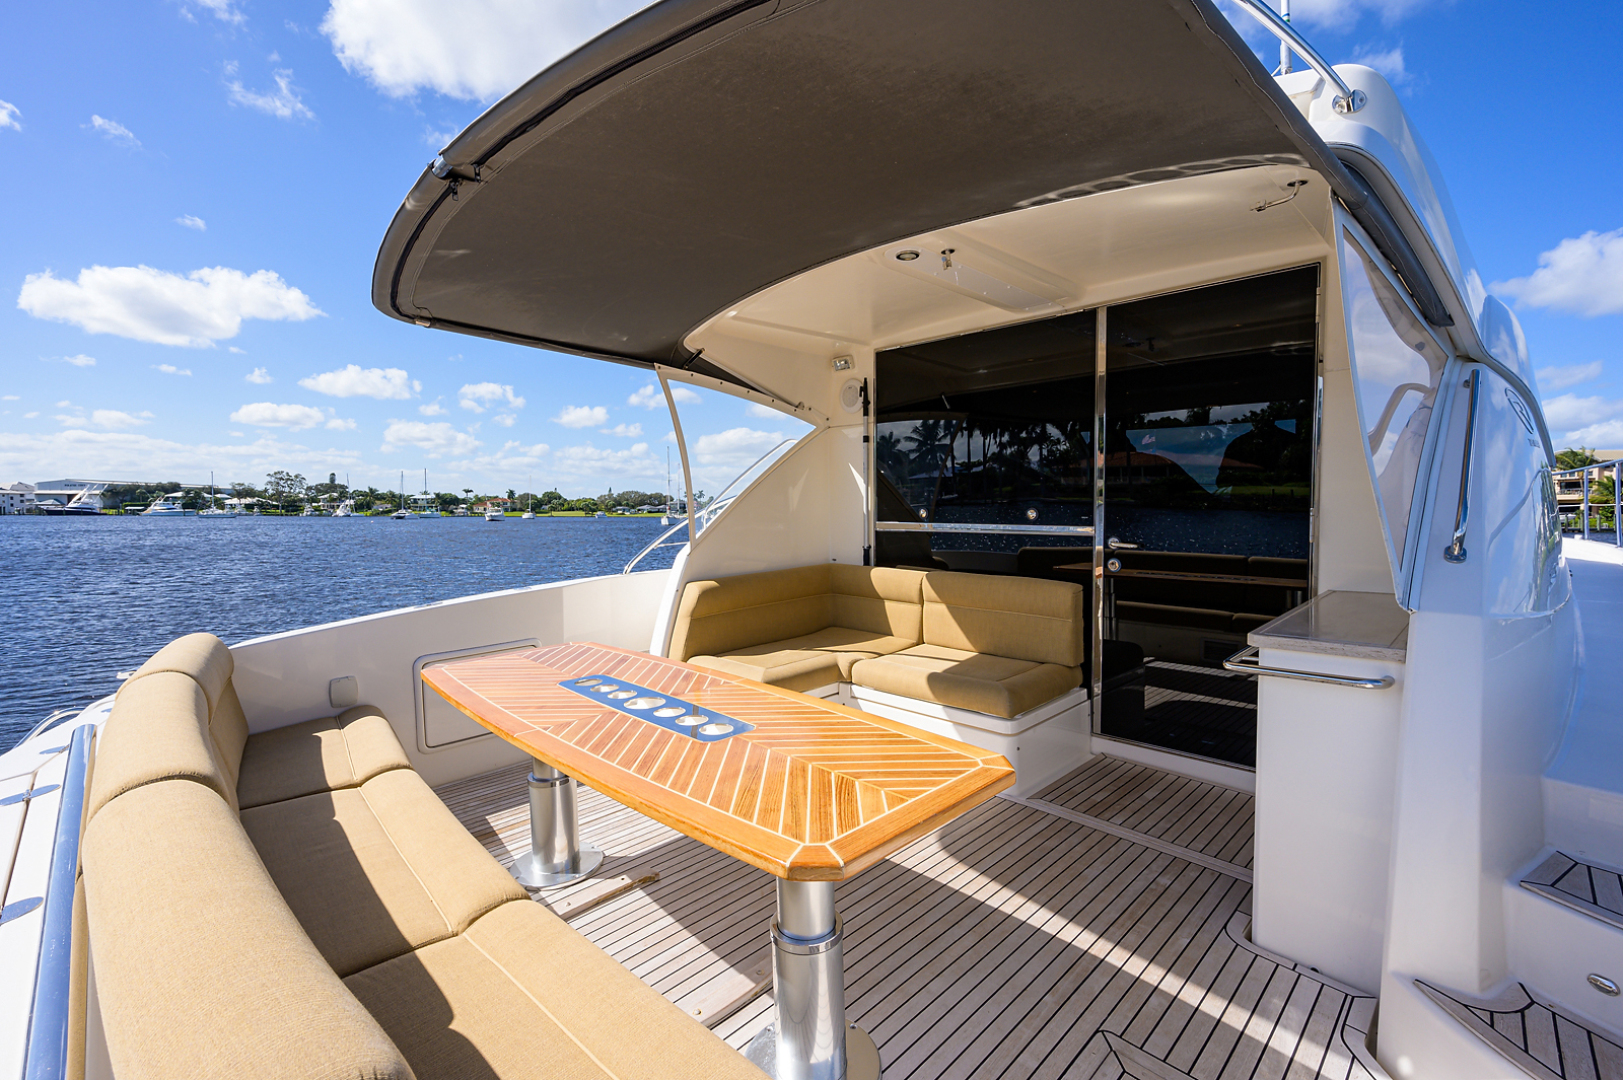 Riviera-5000 Sport Yacht 2012-Lady J Palm Beach-Florida-United States-1553509 | Thumbnail